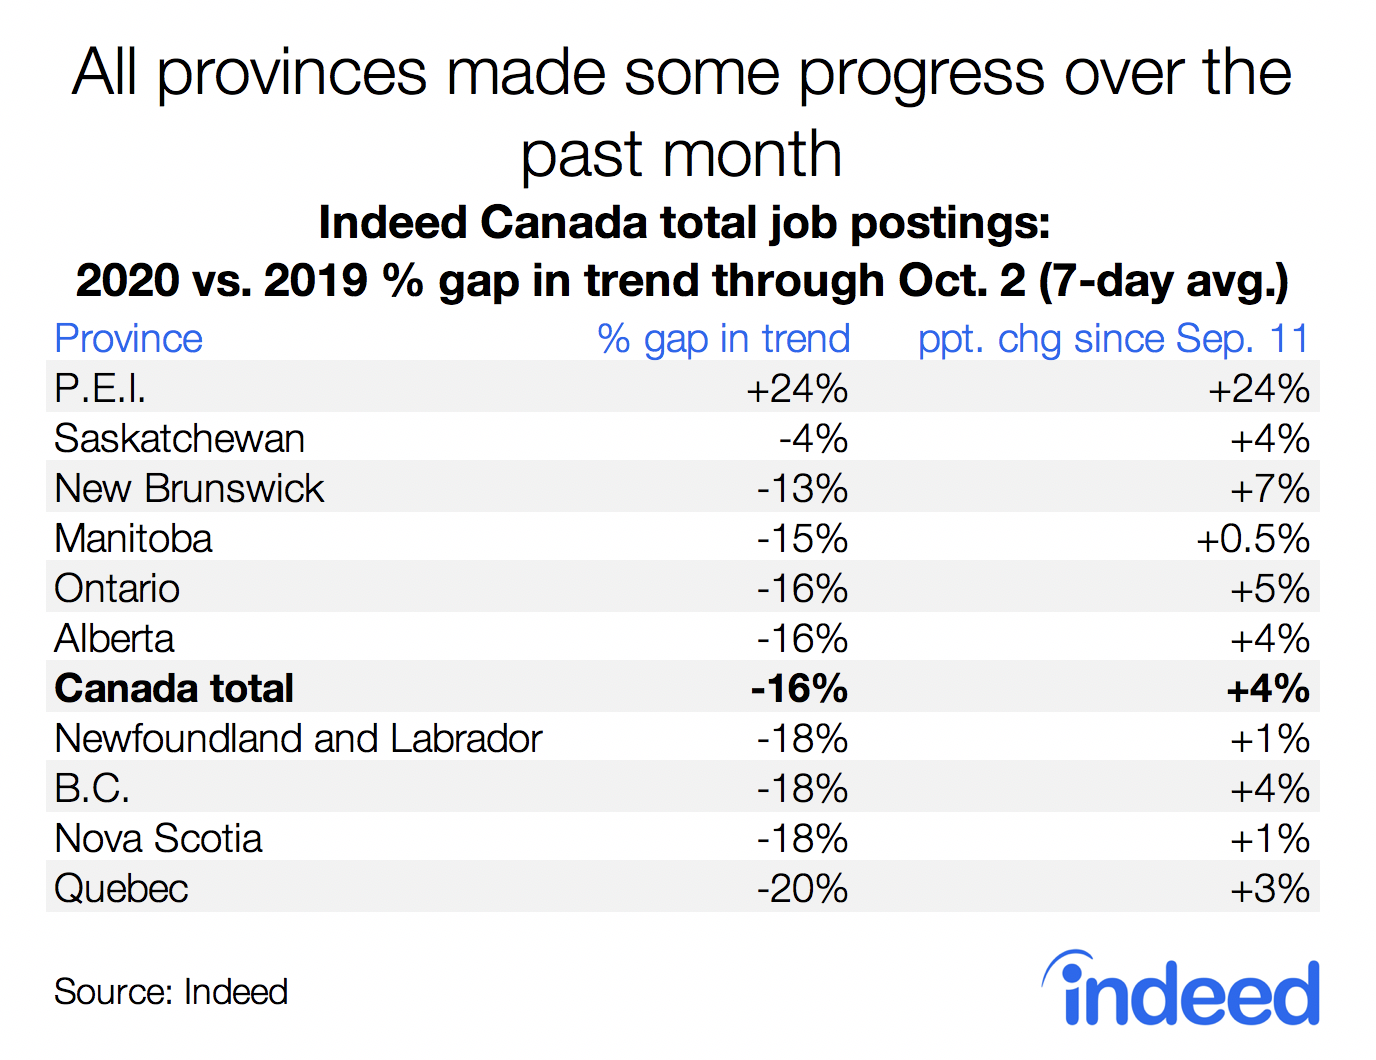 Table showing job posting trends in Canadian provinces